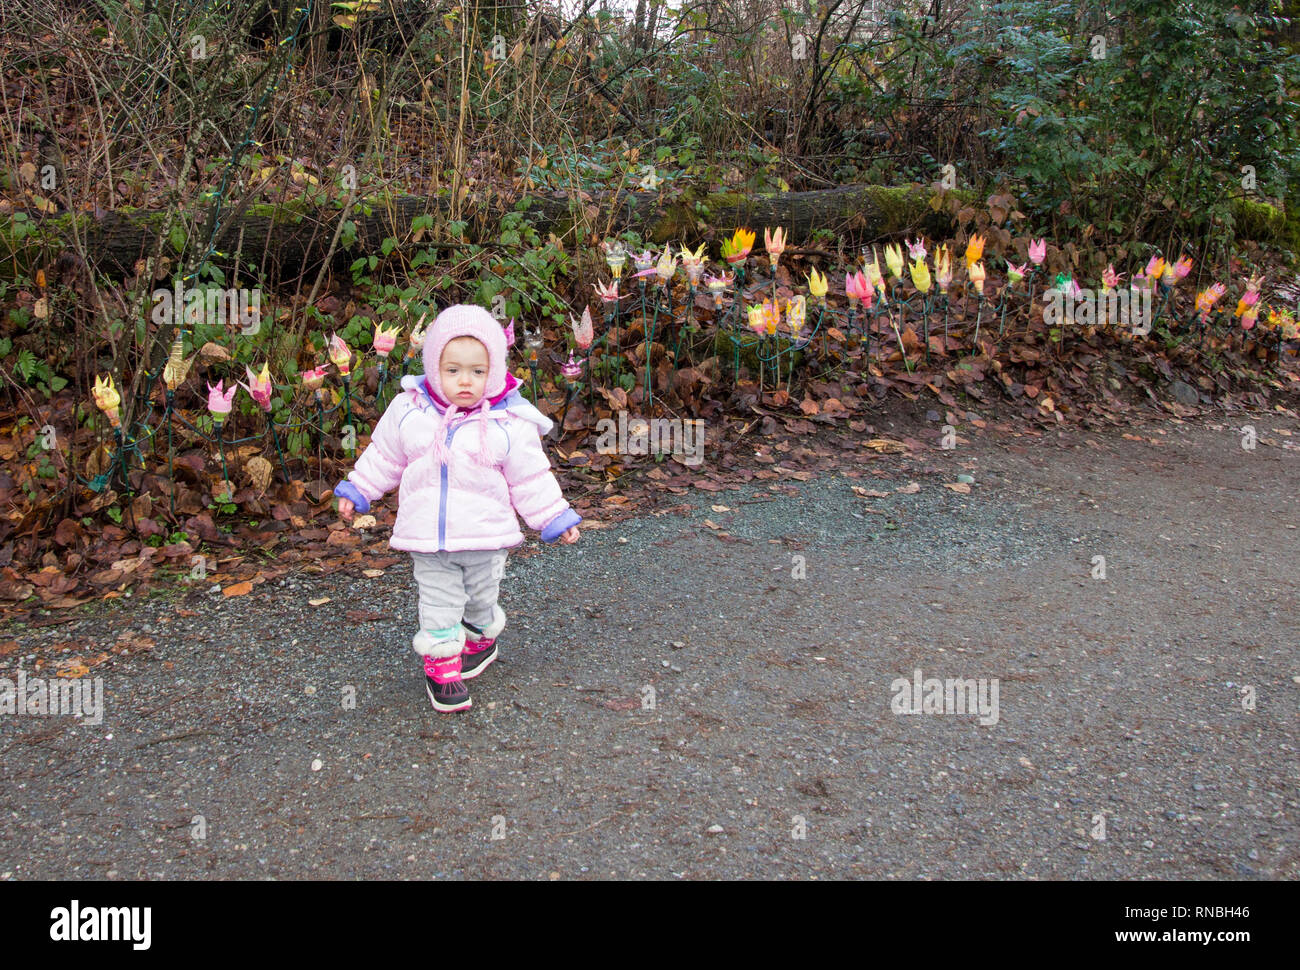 18 months old baby posing with the Christmas lights during a beautiful walk in the park. Toddler girl wearing all pink winter outfit outside - Stock Image